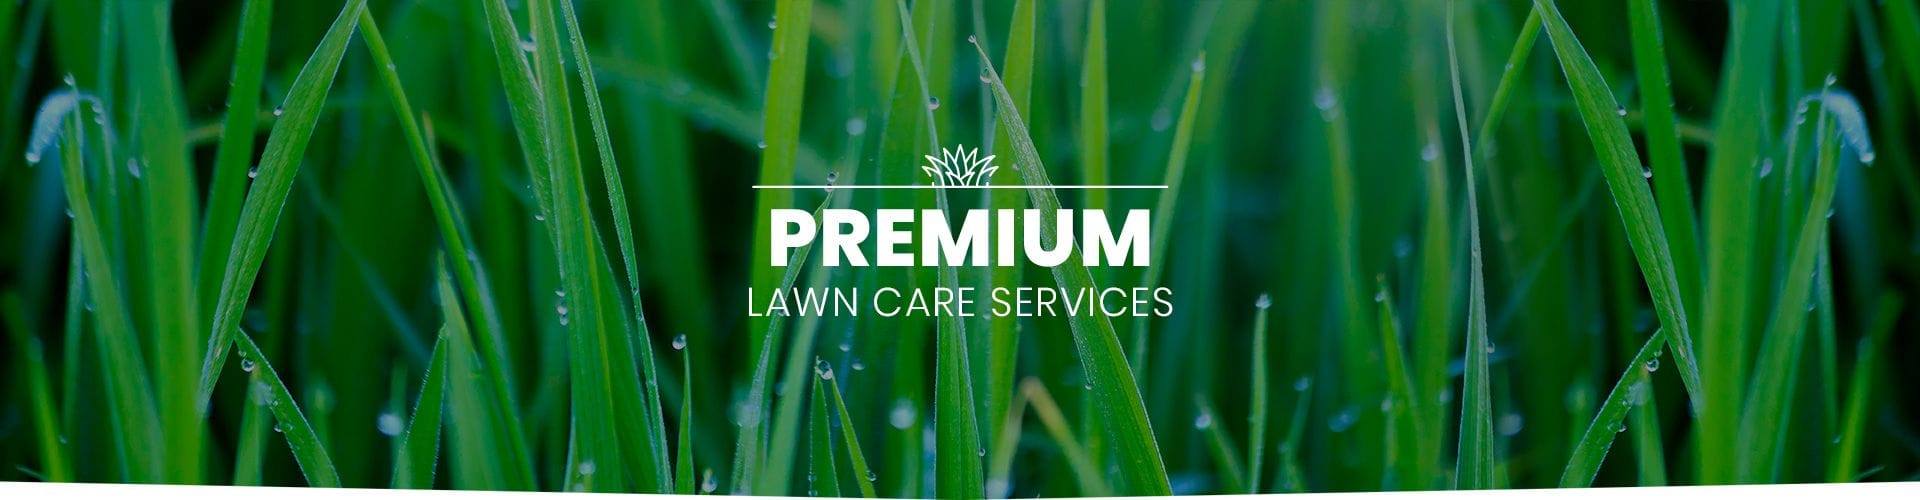 Premium Lawn Care Services Geelong & Bellarine Peninsula